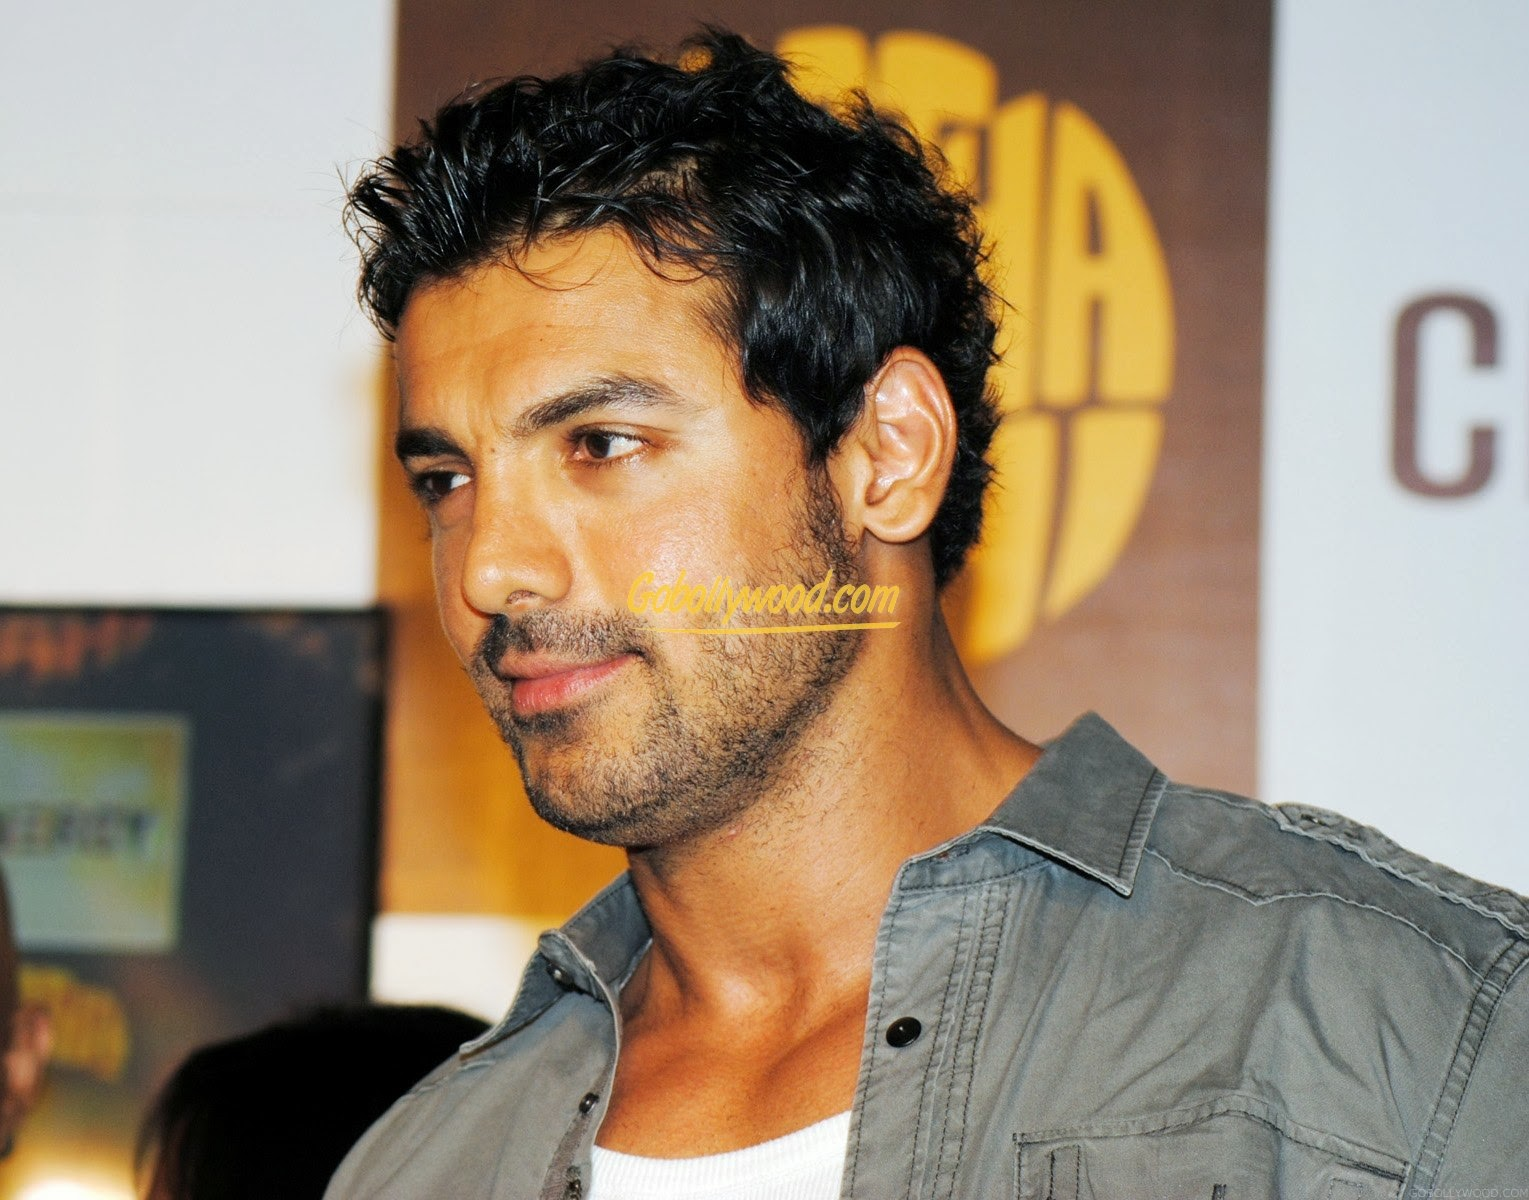 John abraham photos 2018 Contact X Zone Lures Fishing Bait Tackle Products